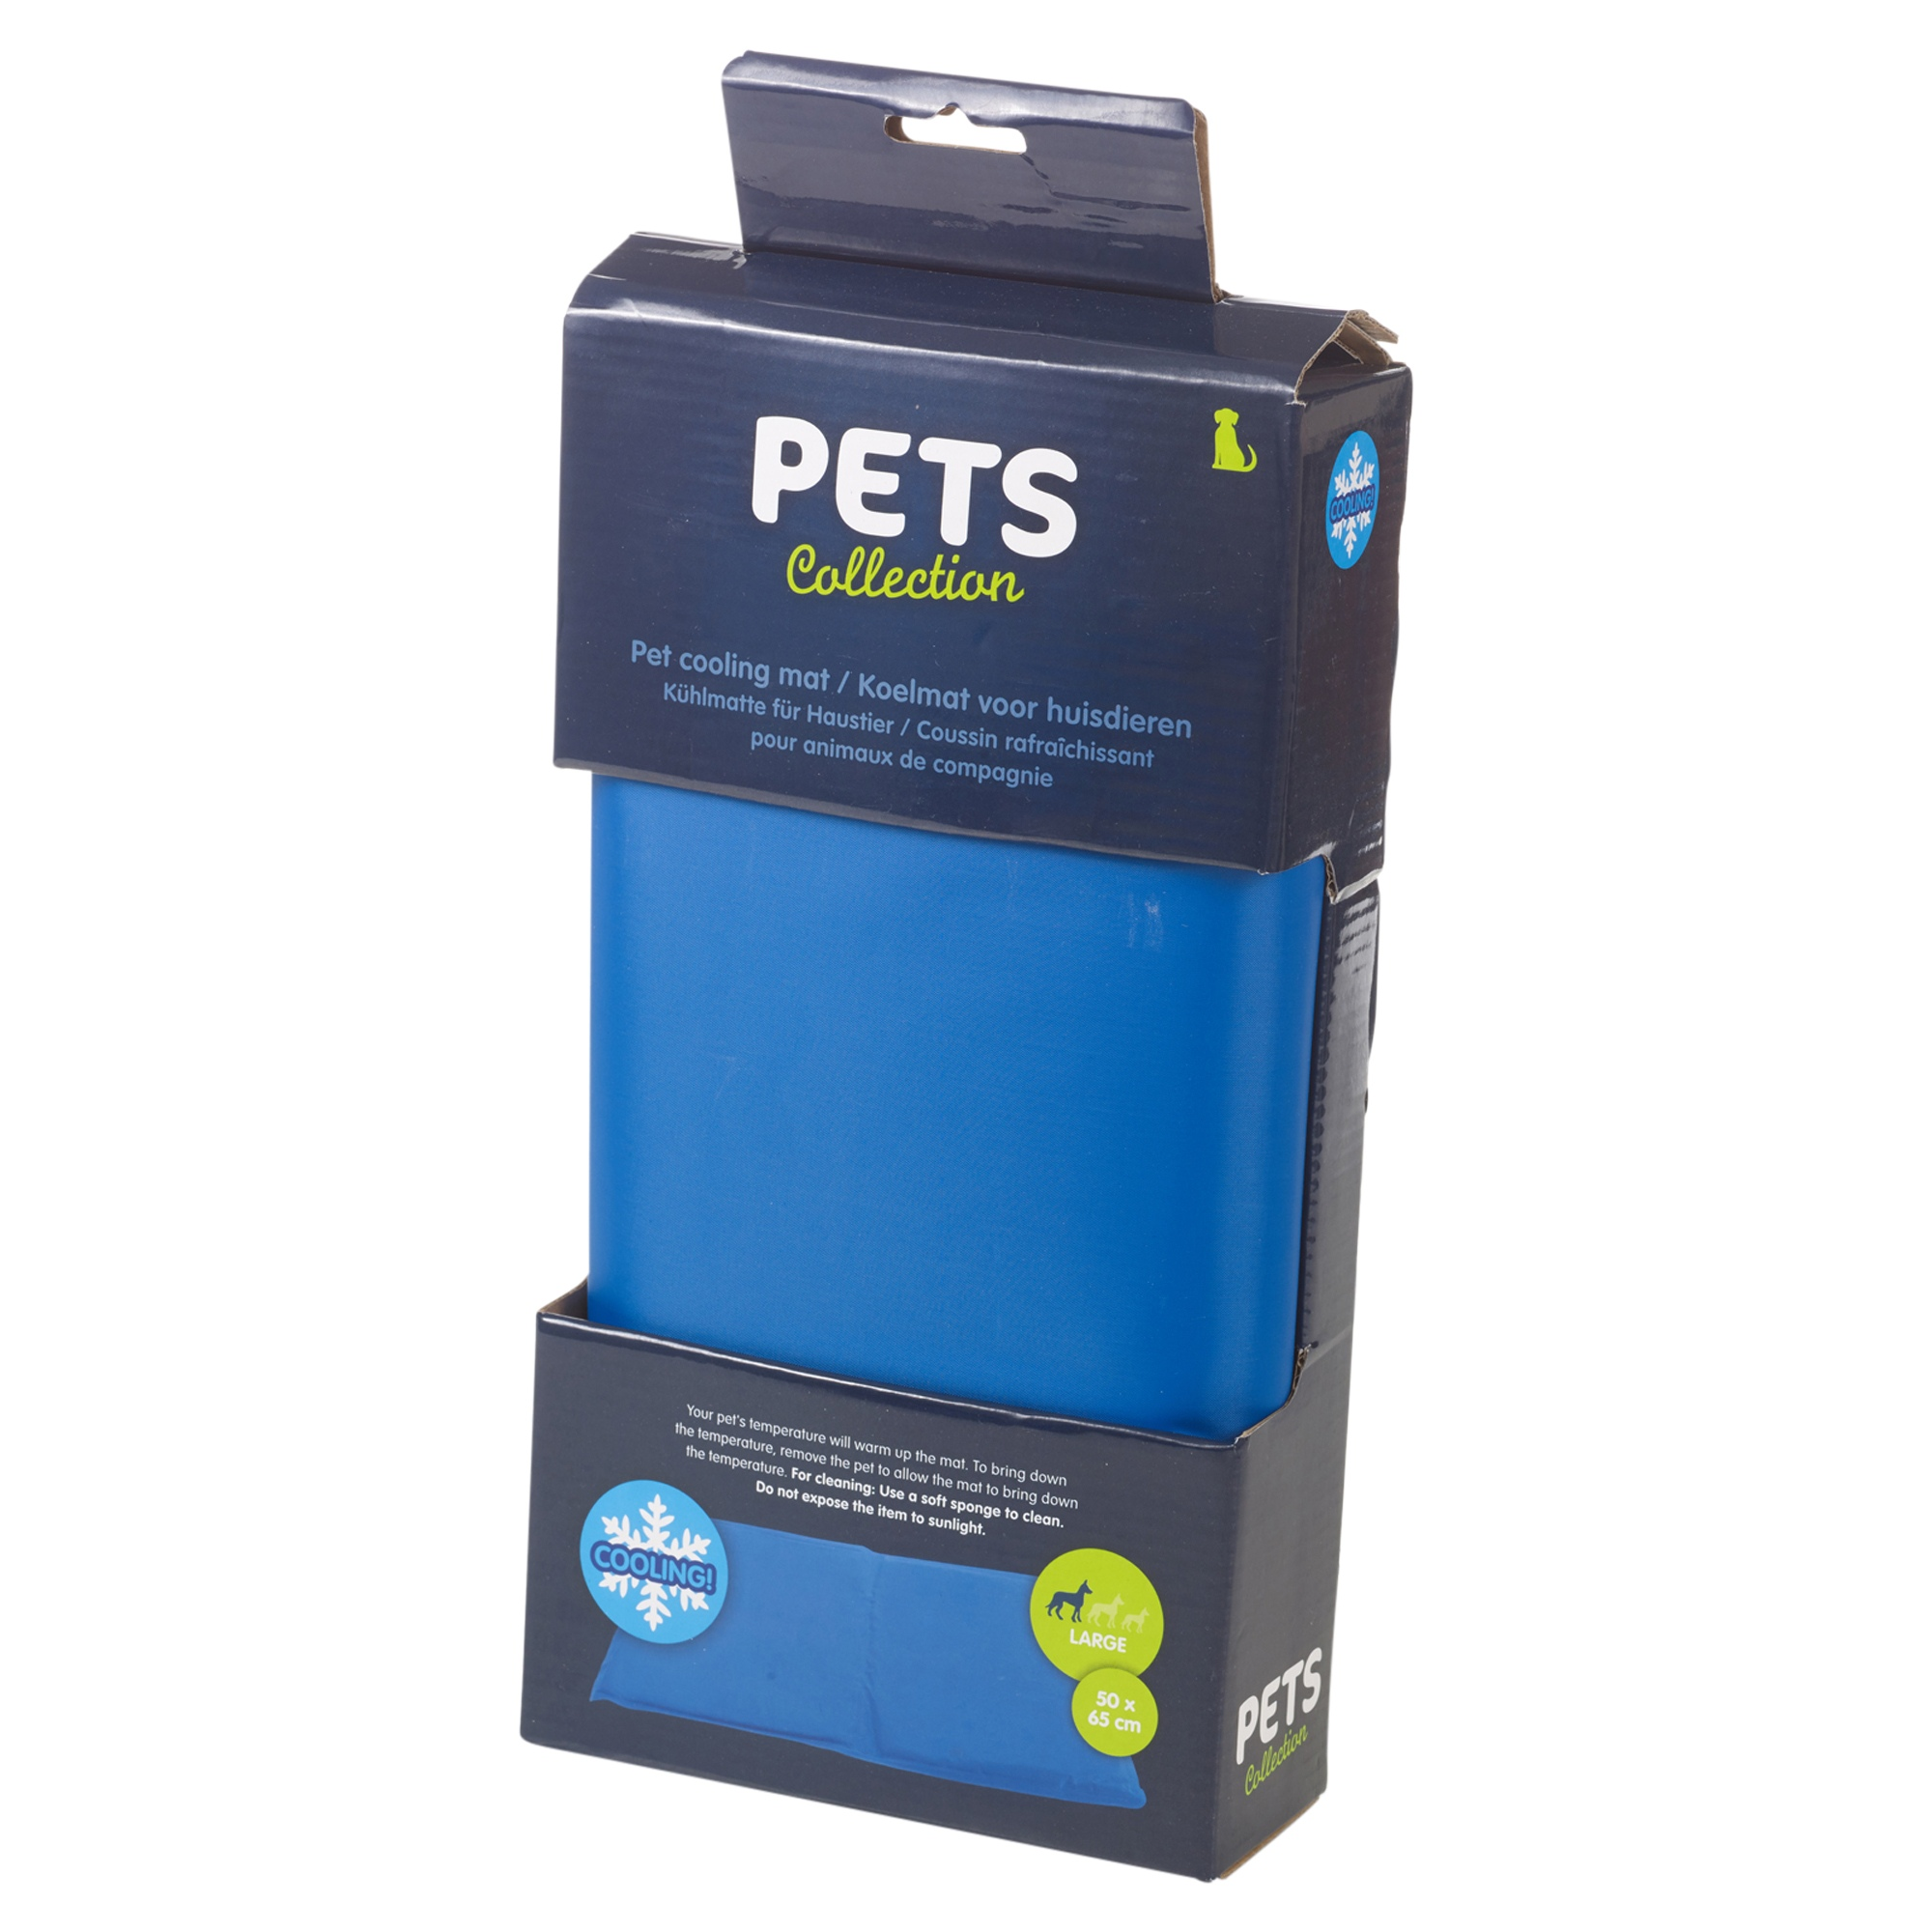 mats one mat for pets crate the orthopedic pet on floor air interlaced